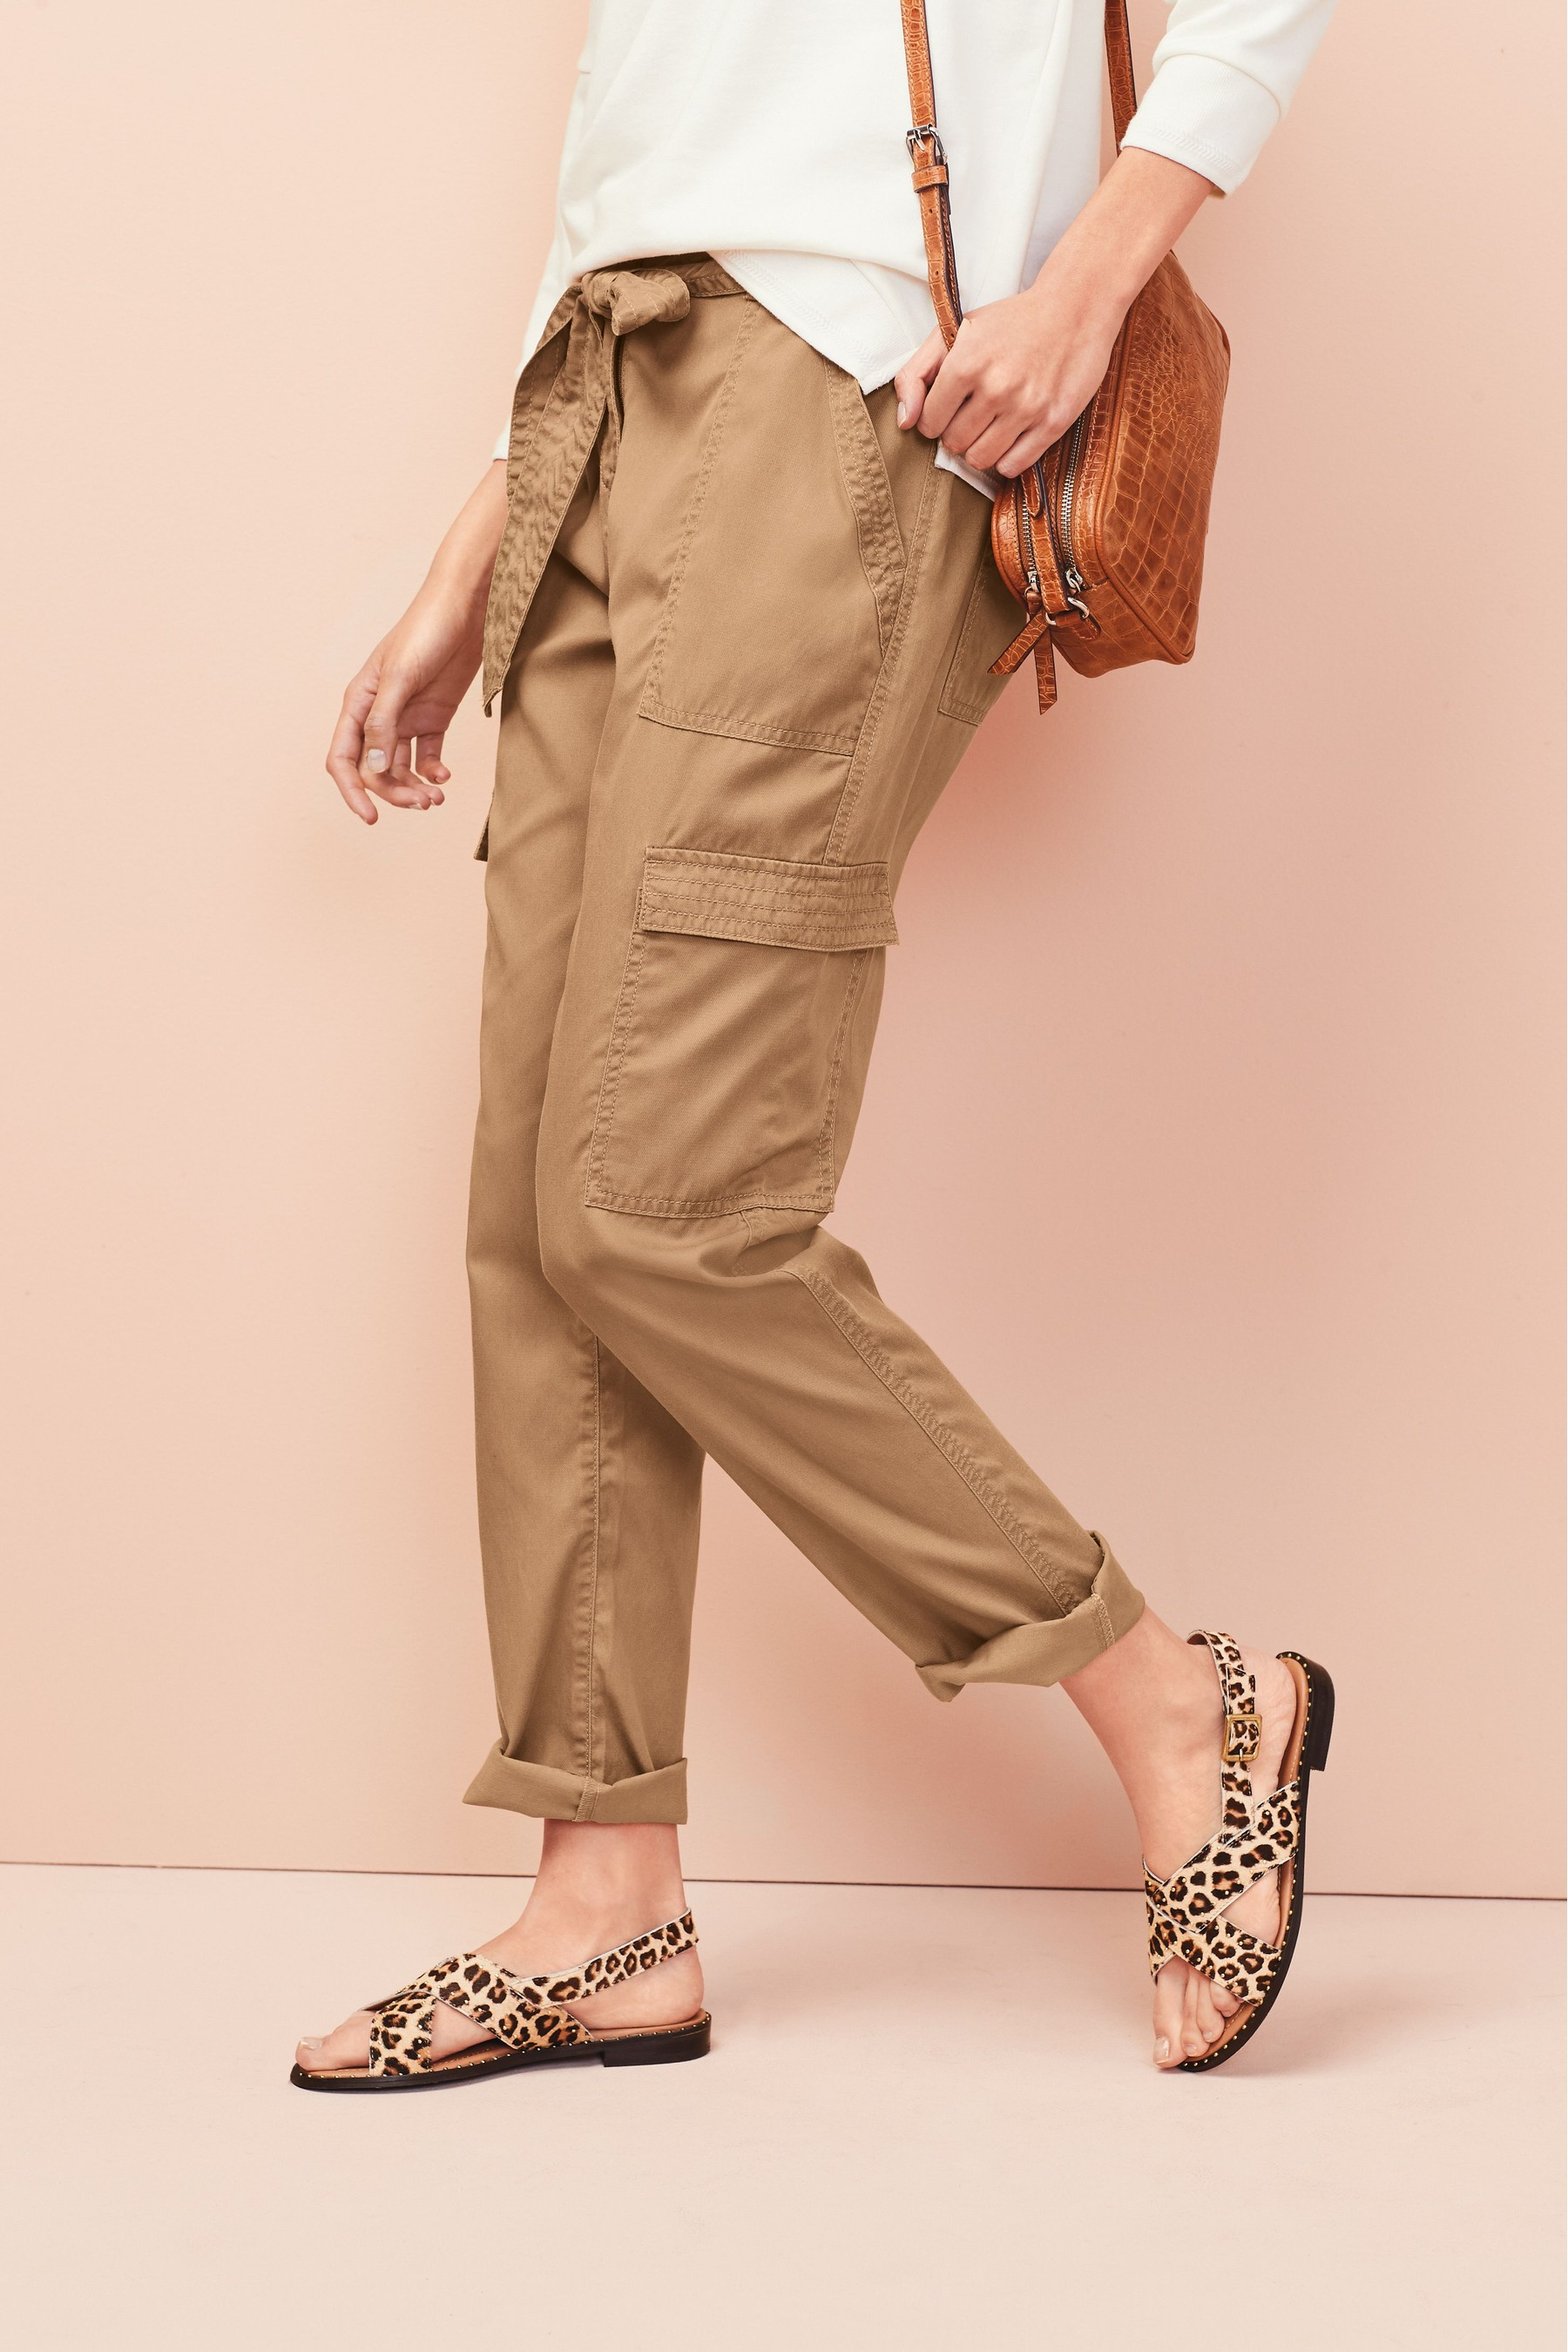 Next Utility pocket trousers £32